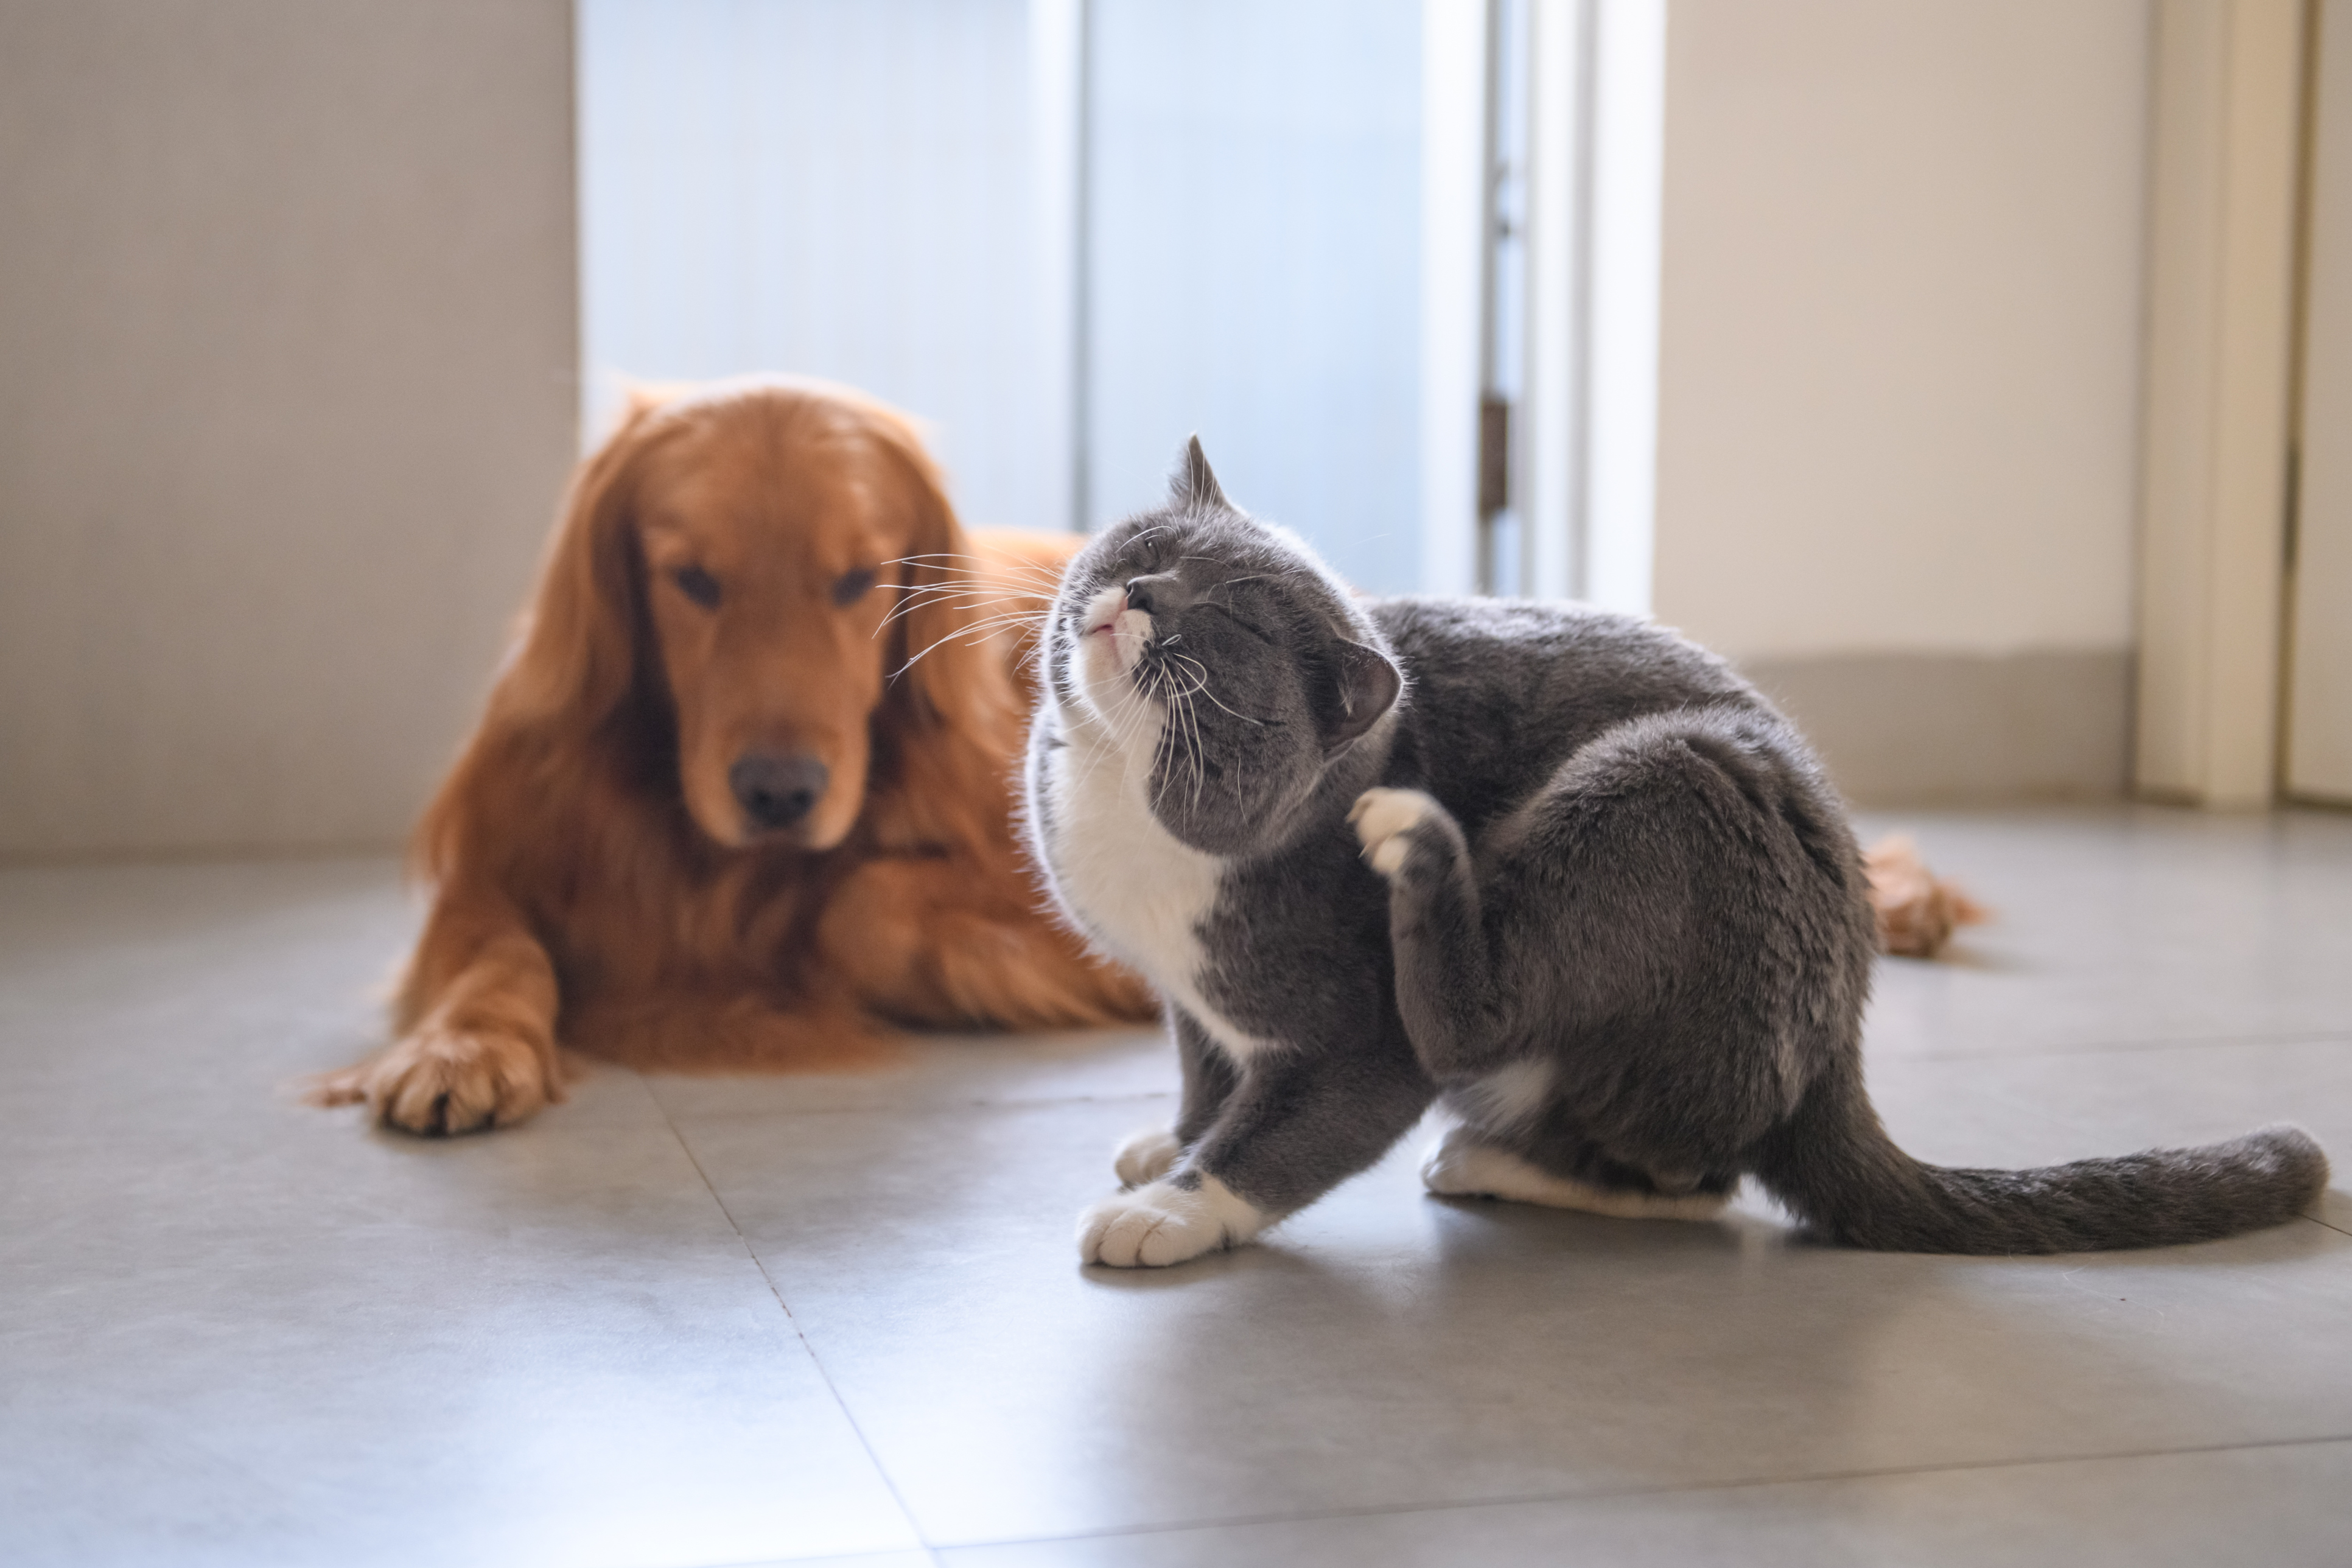 Gray and white cat scratching its ear with a hind leg; golden retriever-type dog in the background; fleas and ticks problem